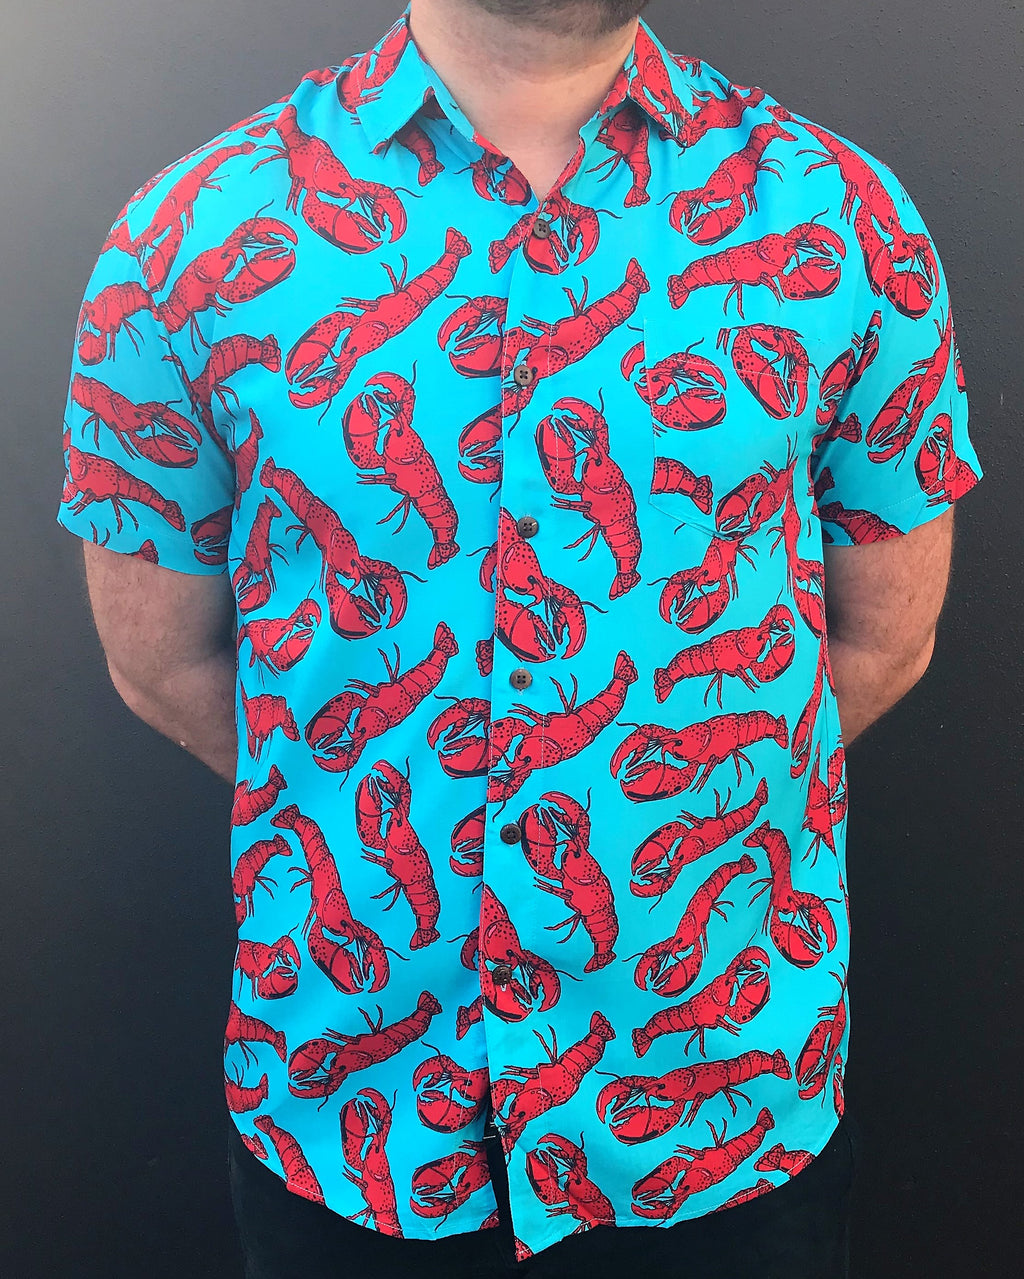 BUTTON UP PARTY SHIRT, SHORT SLEEVE LOBSTER, HAWAIIAN SHIRT, BLUE LOBSTER SHIRT, SKY BLUE, FESTIVAL CLOTHS,SUMMER OUTFIT, LOUD SHIRT, 100% RAYON